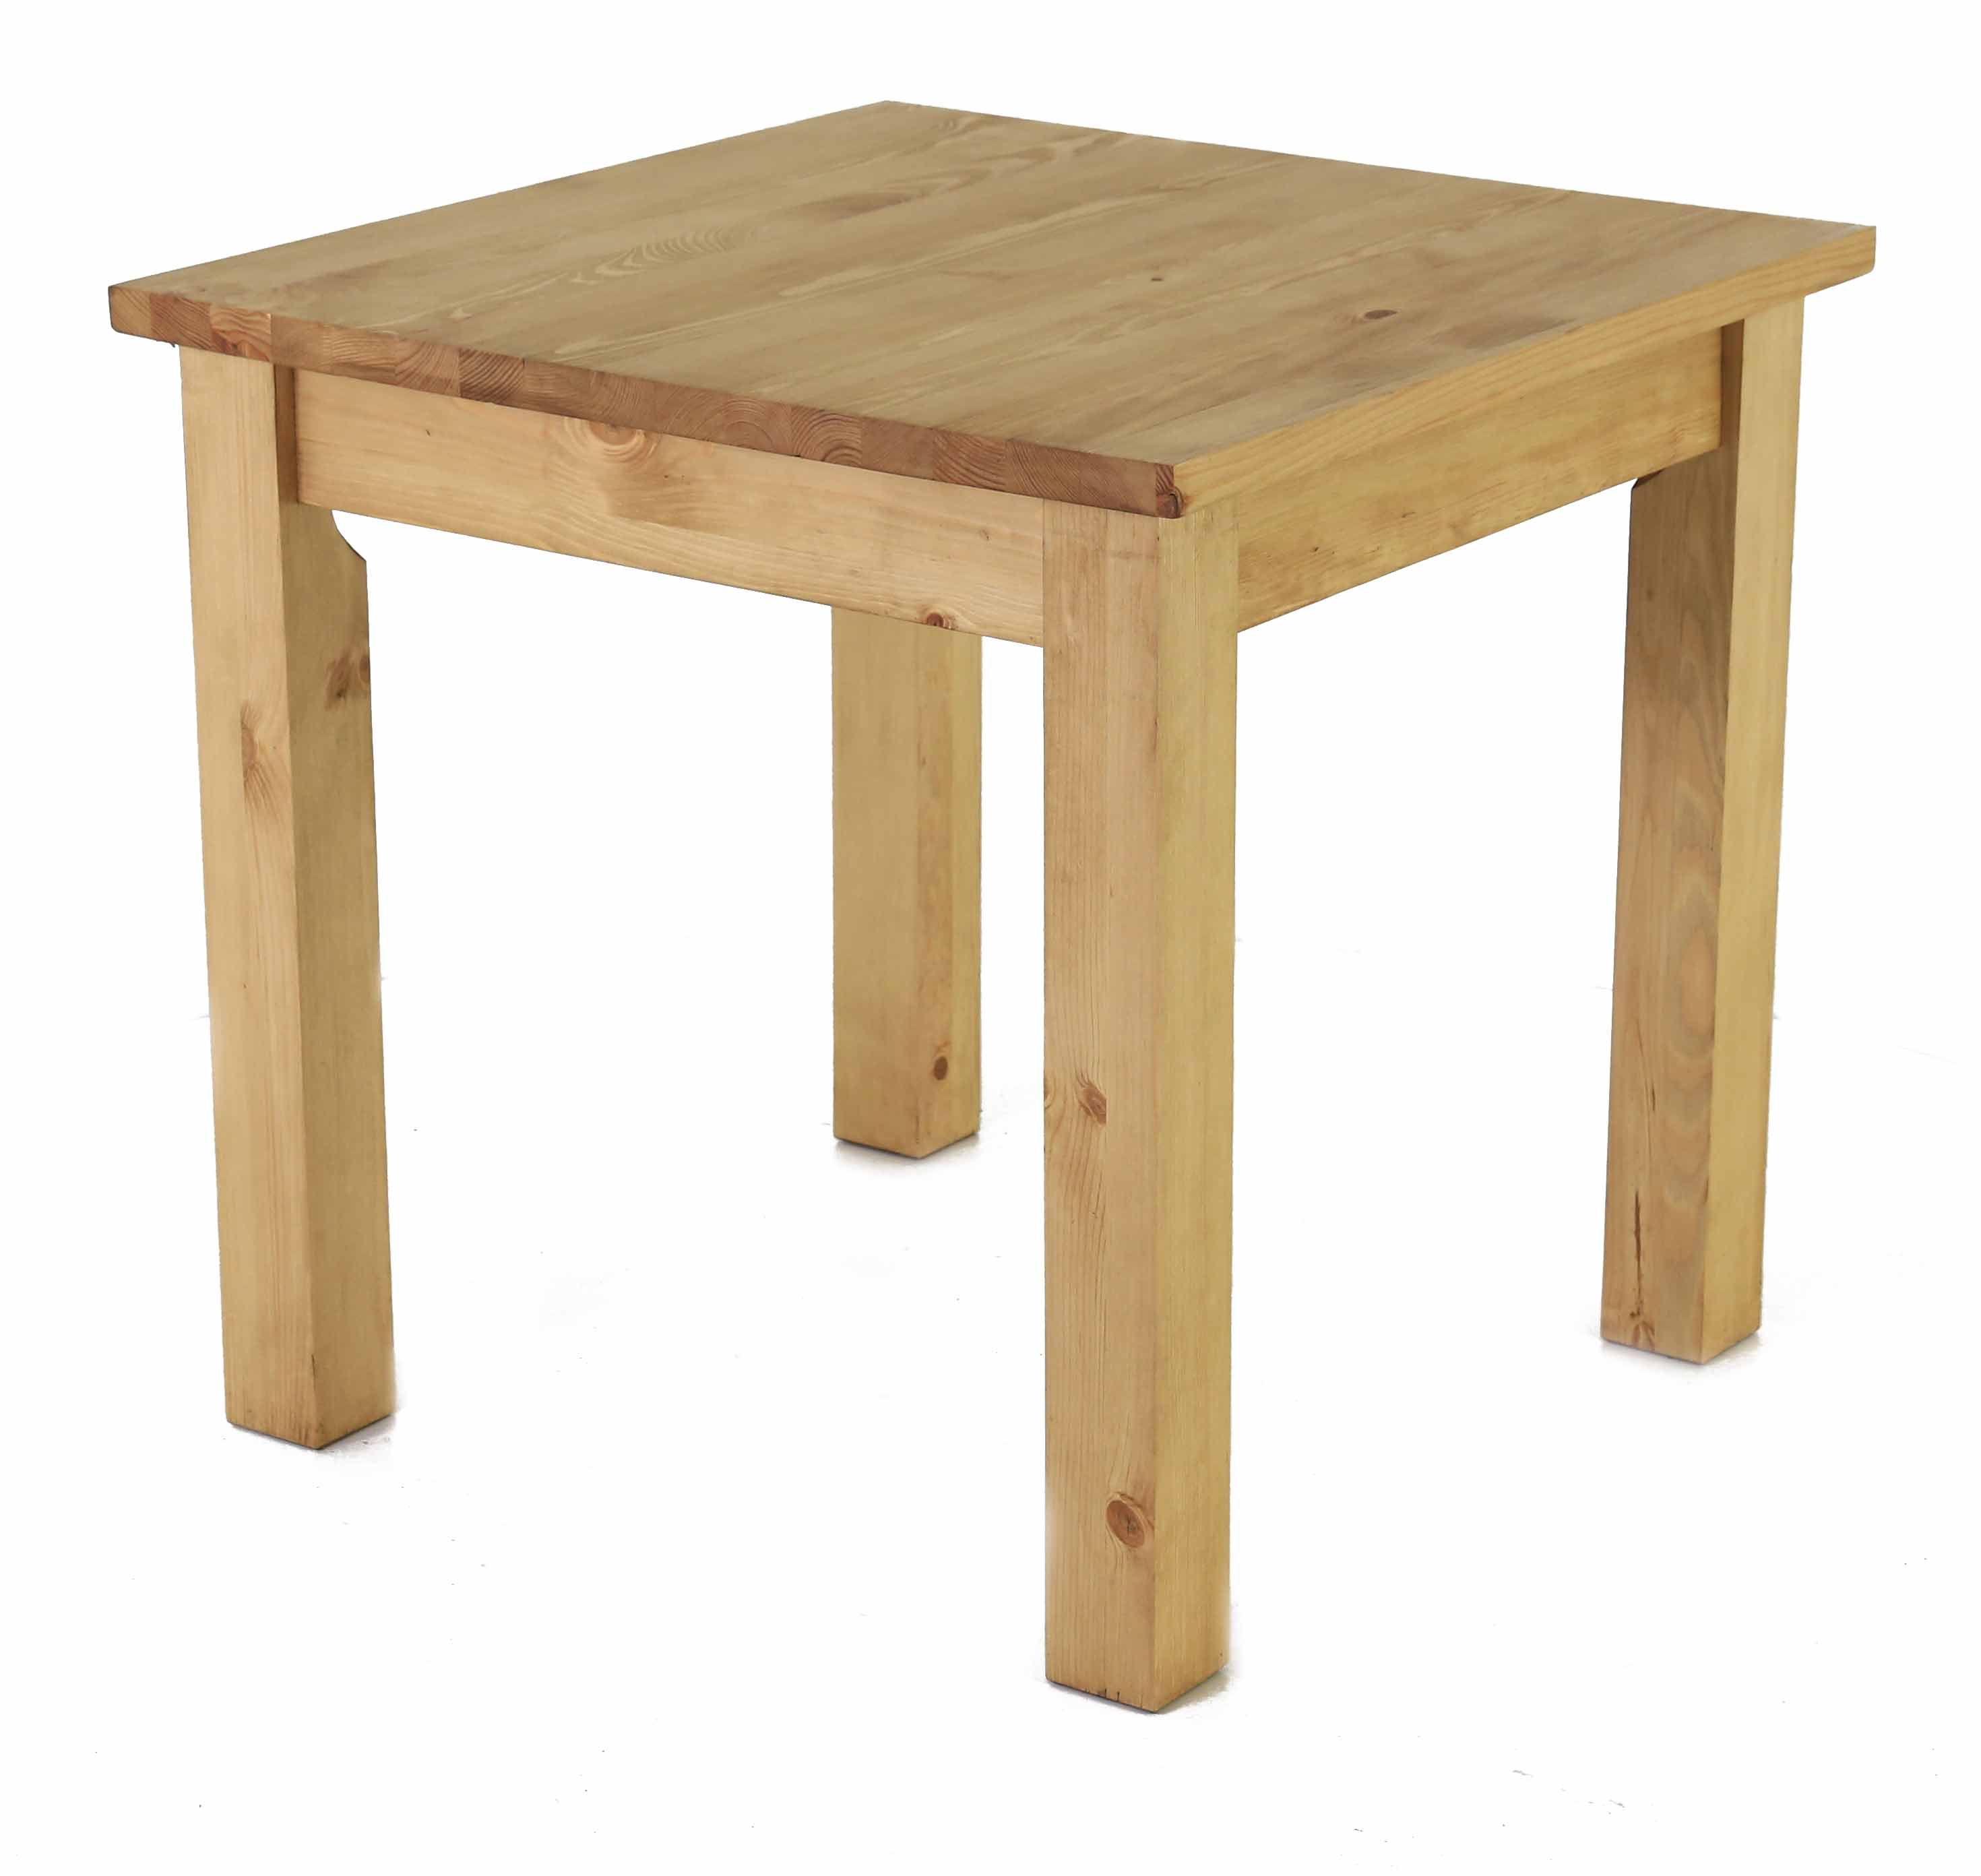 coin repas tables repas table carr 80 cm pin massif